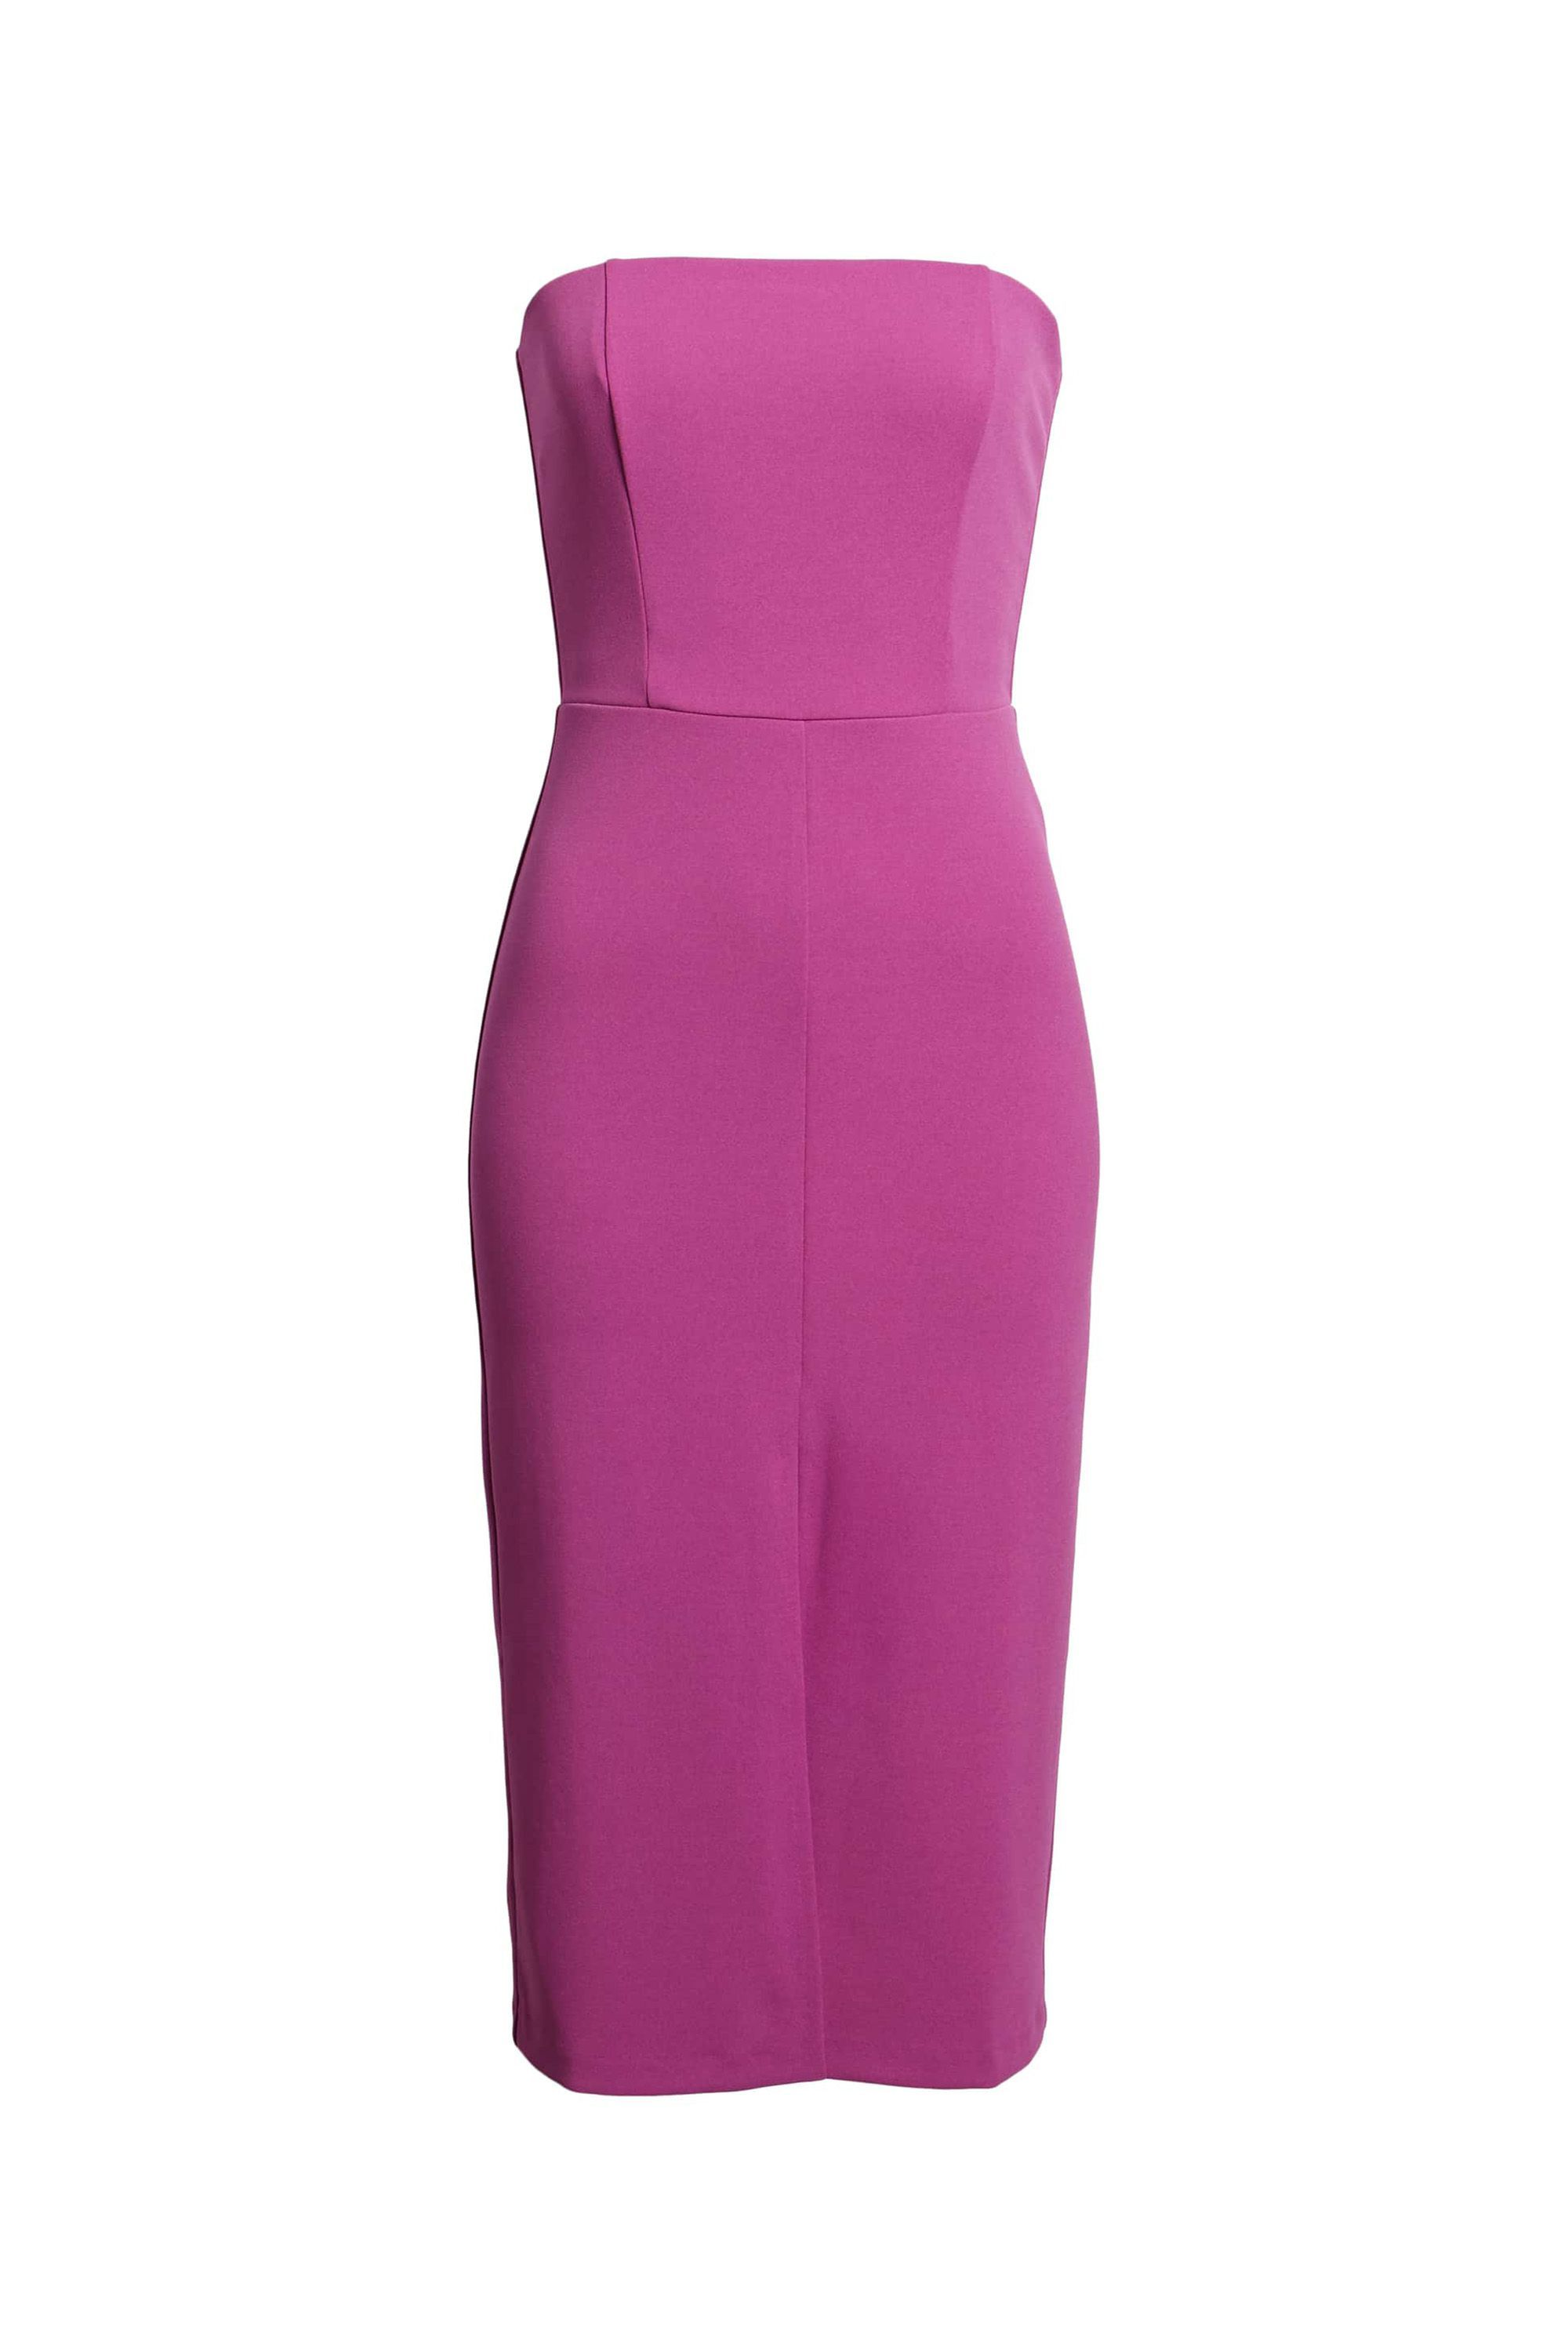 Strapless Midi Dress Leith nordstrom.com $41.40 SHOP NOW This raspberry hue will flatter most complexions.